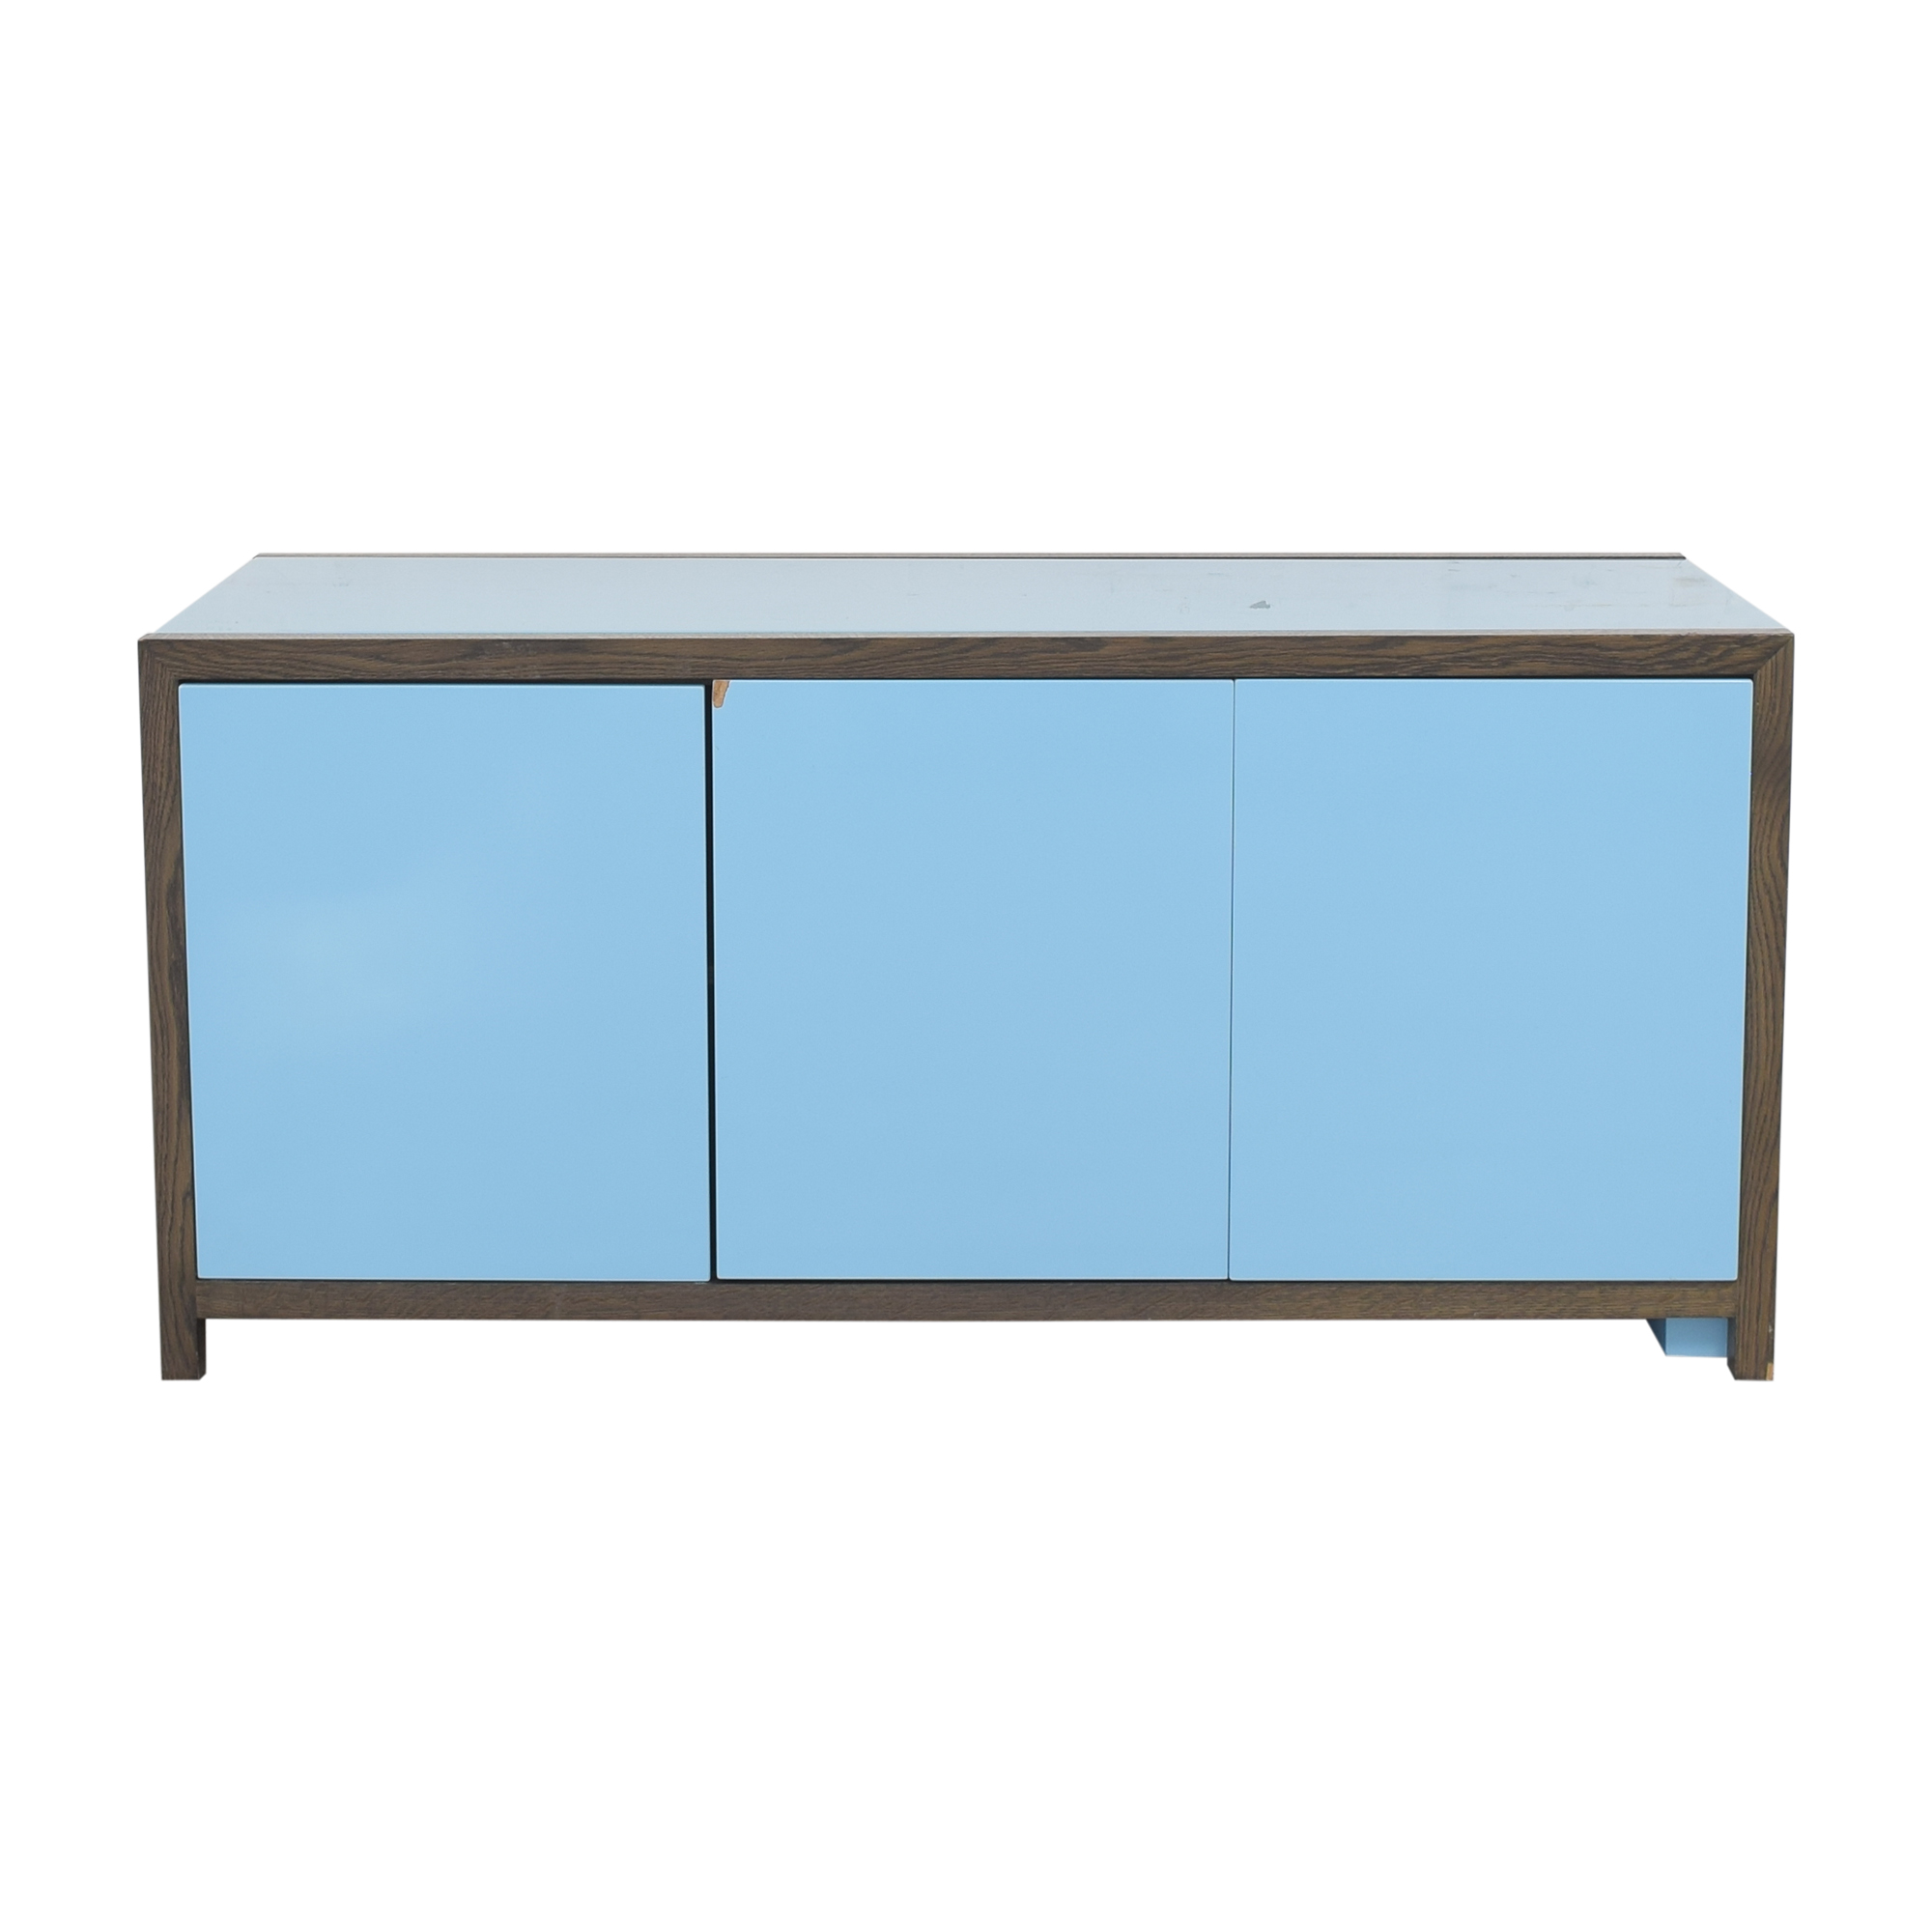 Dune Dune Lemans Sideboard with Extendable Desk discount